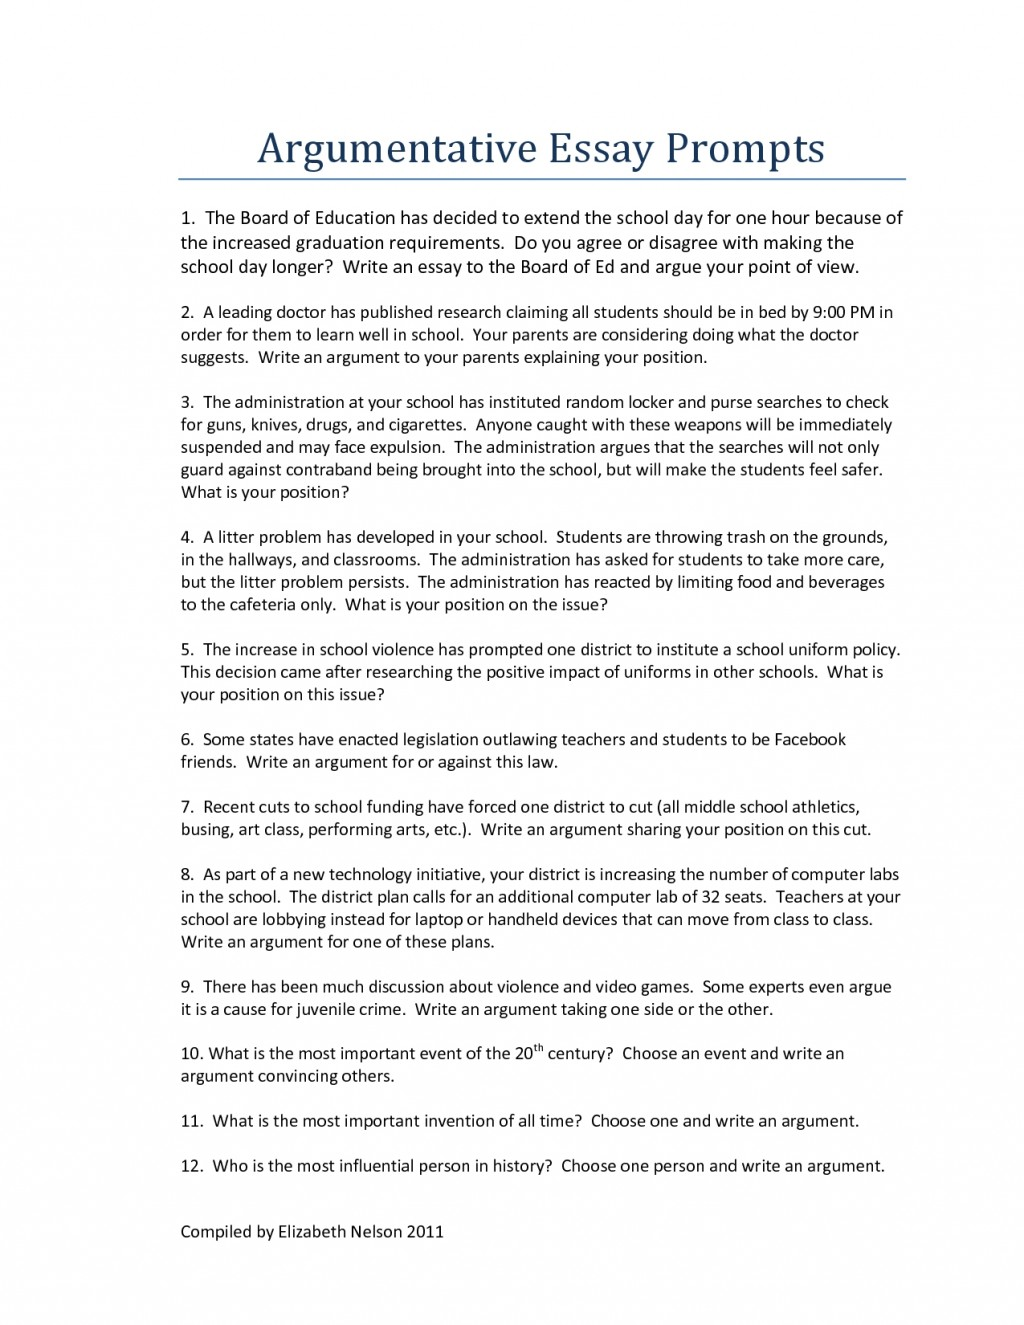 012 Good Persuasive Essay Topics Example Argumentative For Middle School Writings And Essays High Argument Speech About Uniform Education Uniforms Rules Amazing 2018 Uk Large